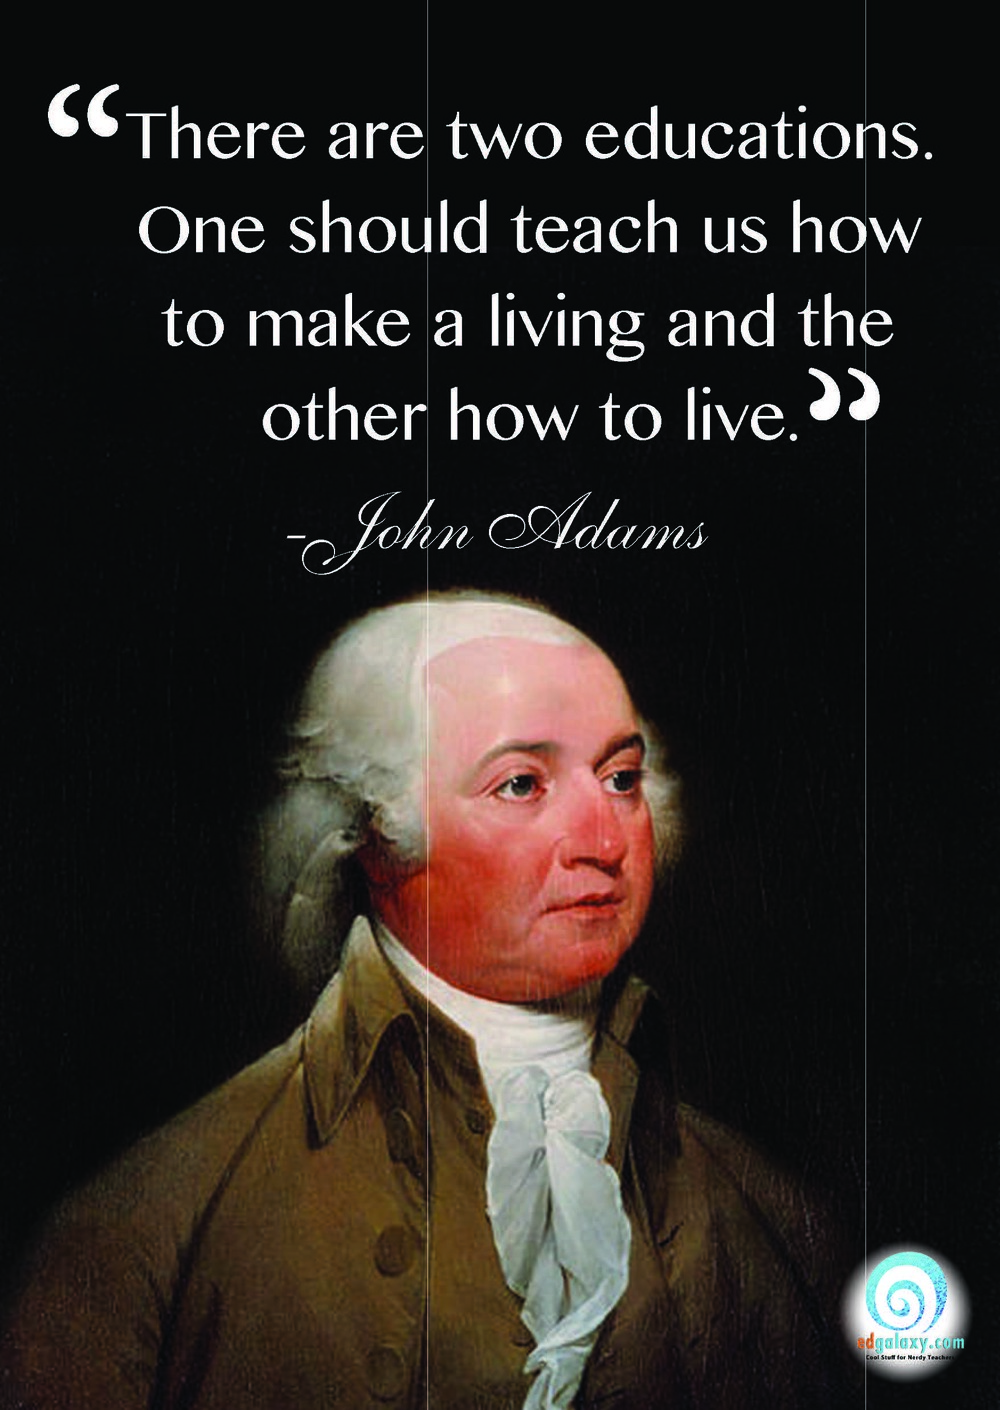 Education Quotes Posters 2 jpg_Page_11.jpg